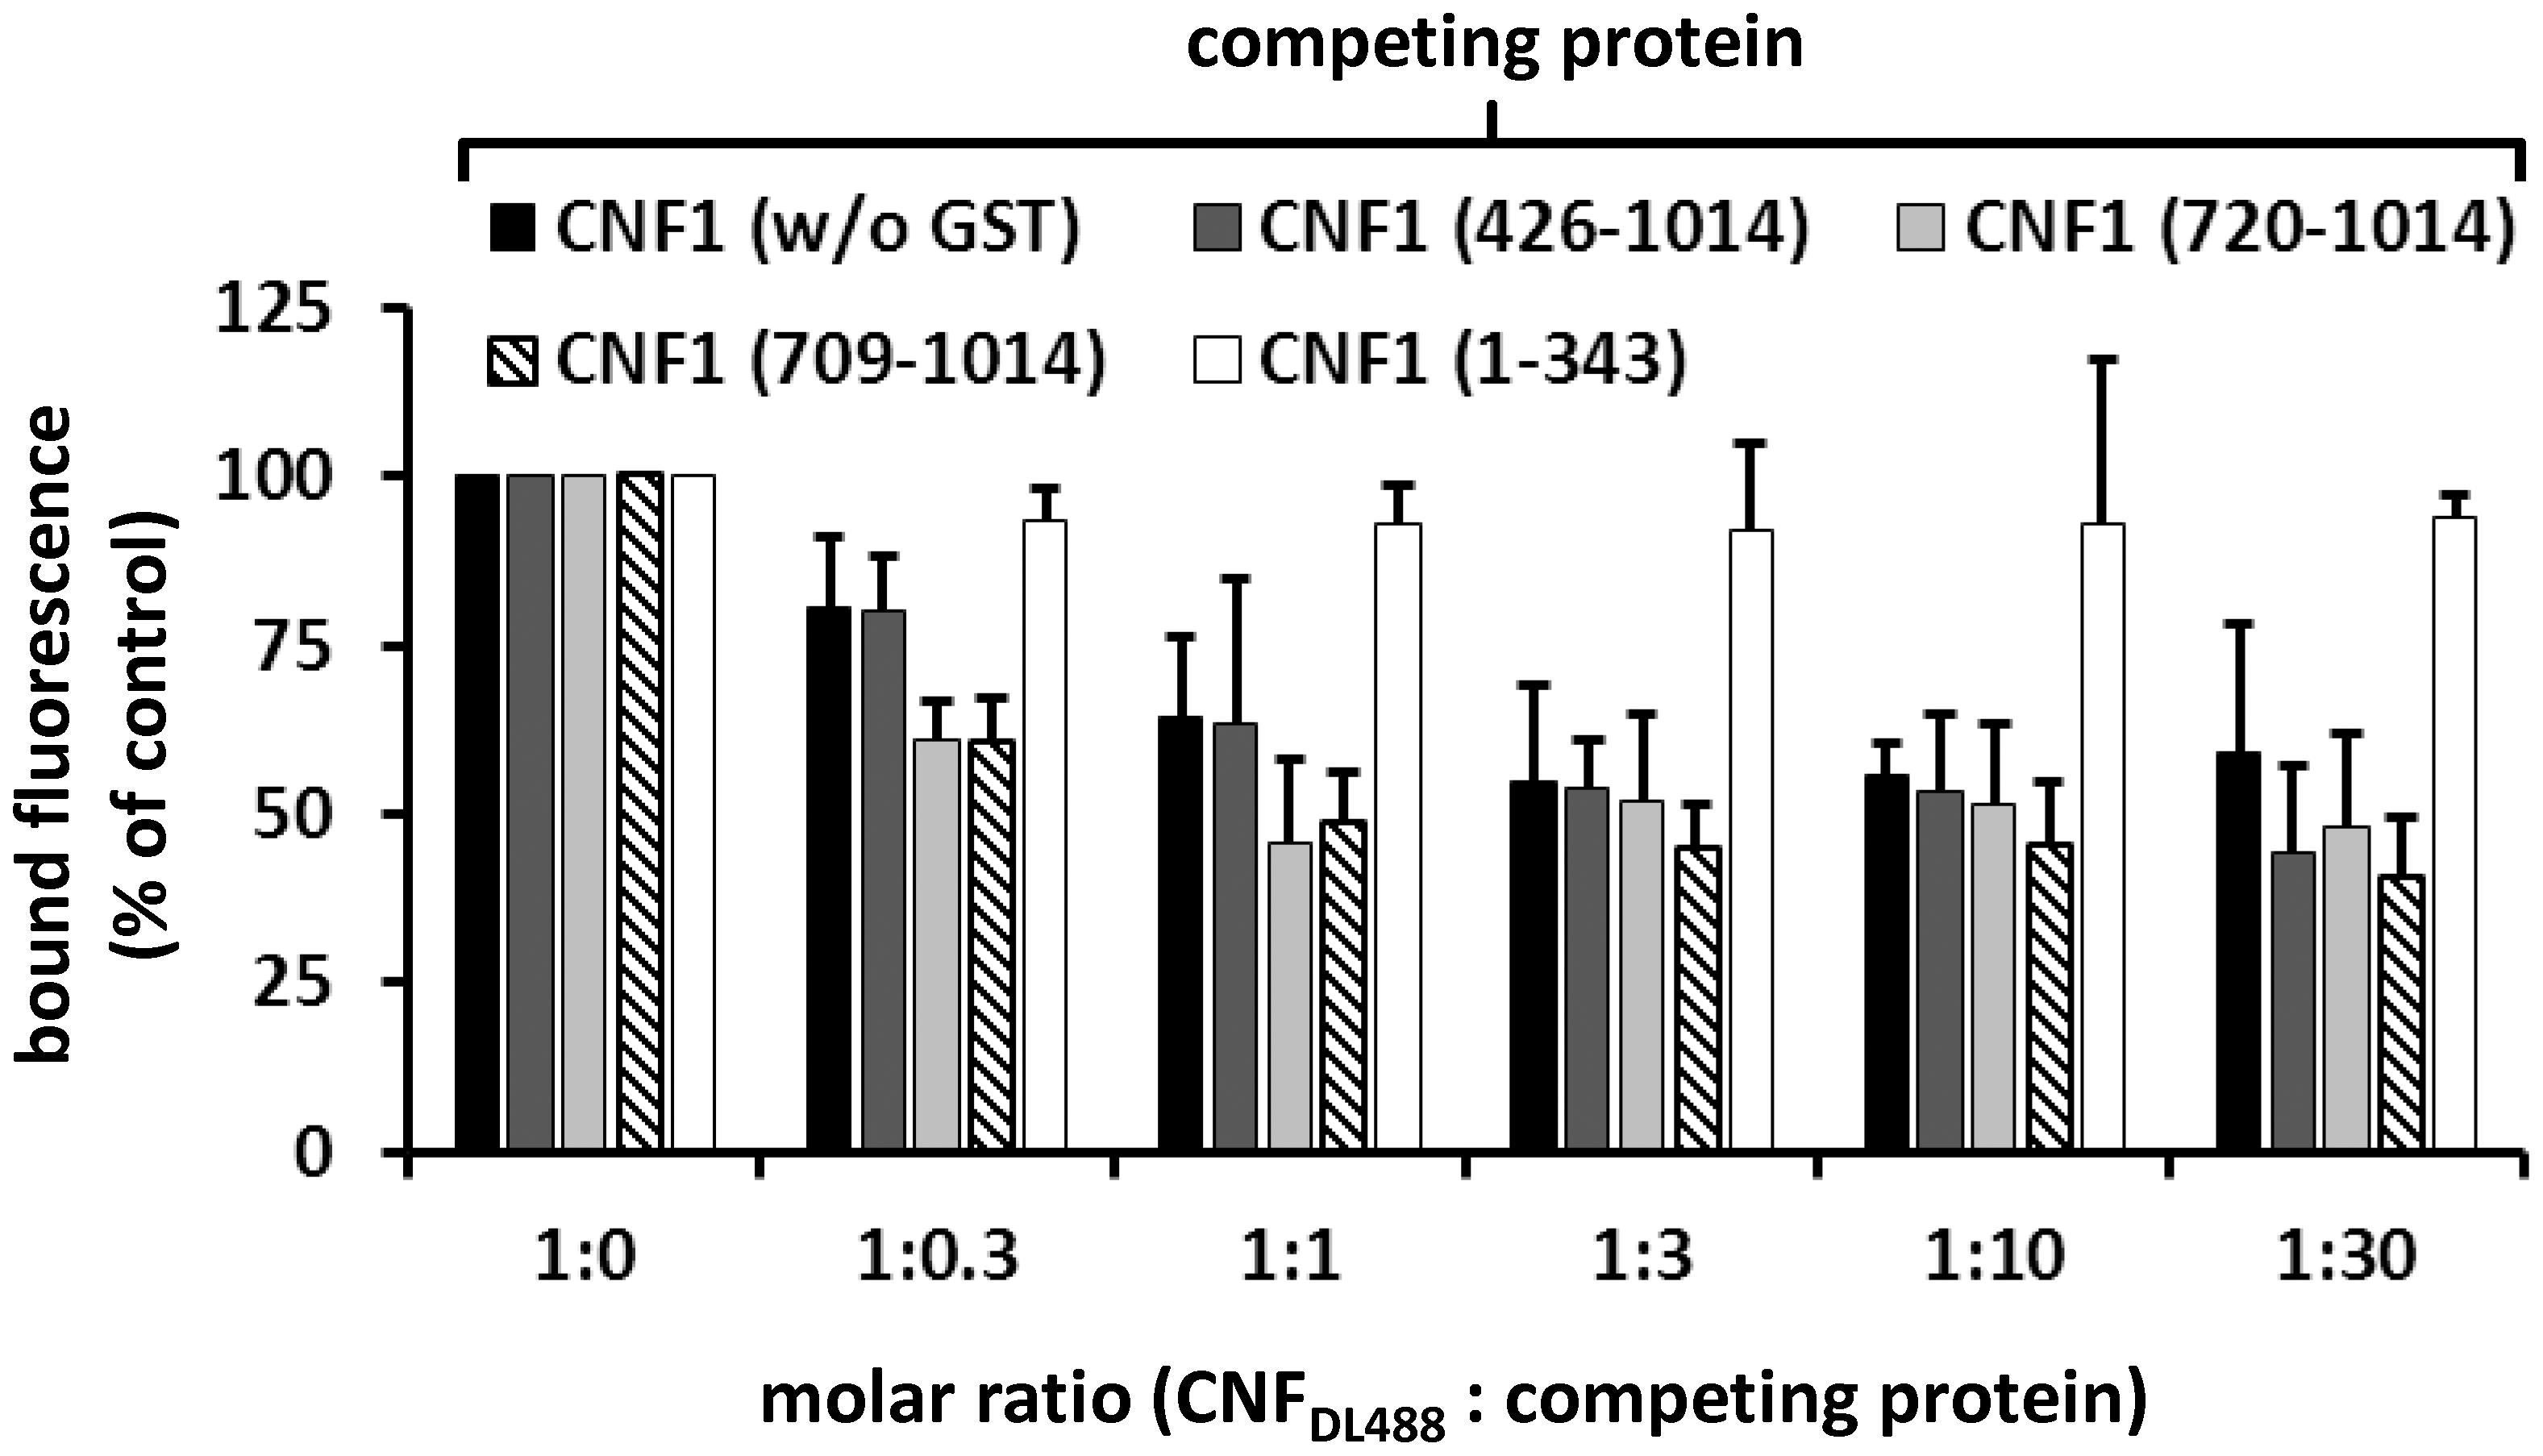 CNF1 binds to the cell surface via a C-terminal peptide.